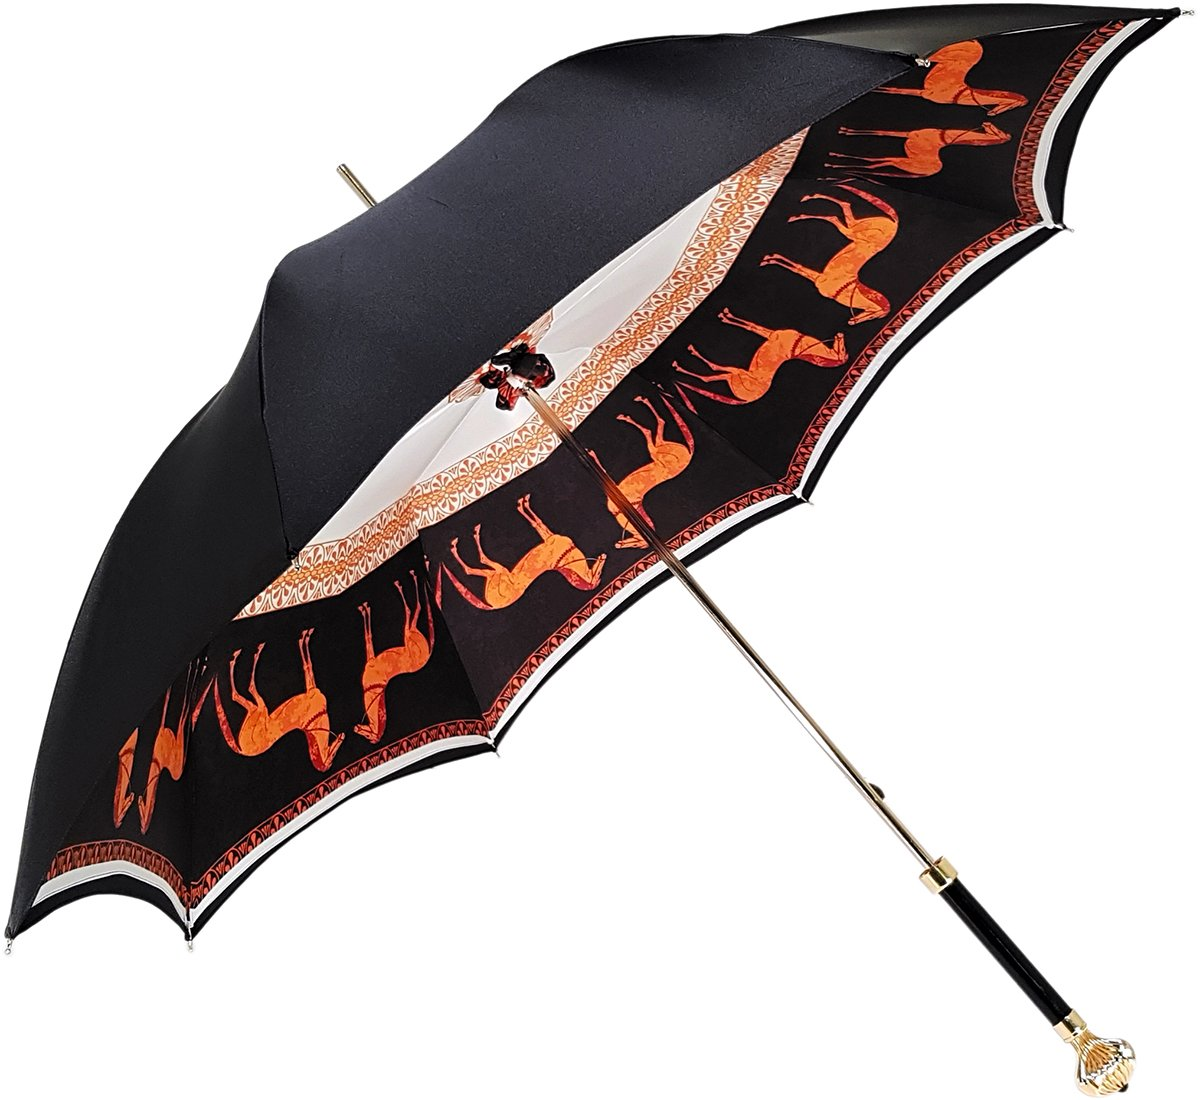 Double Cloth Women's Umbrella with Printed Horses Design - il-marchesato